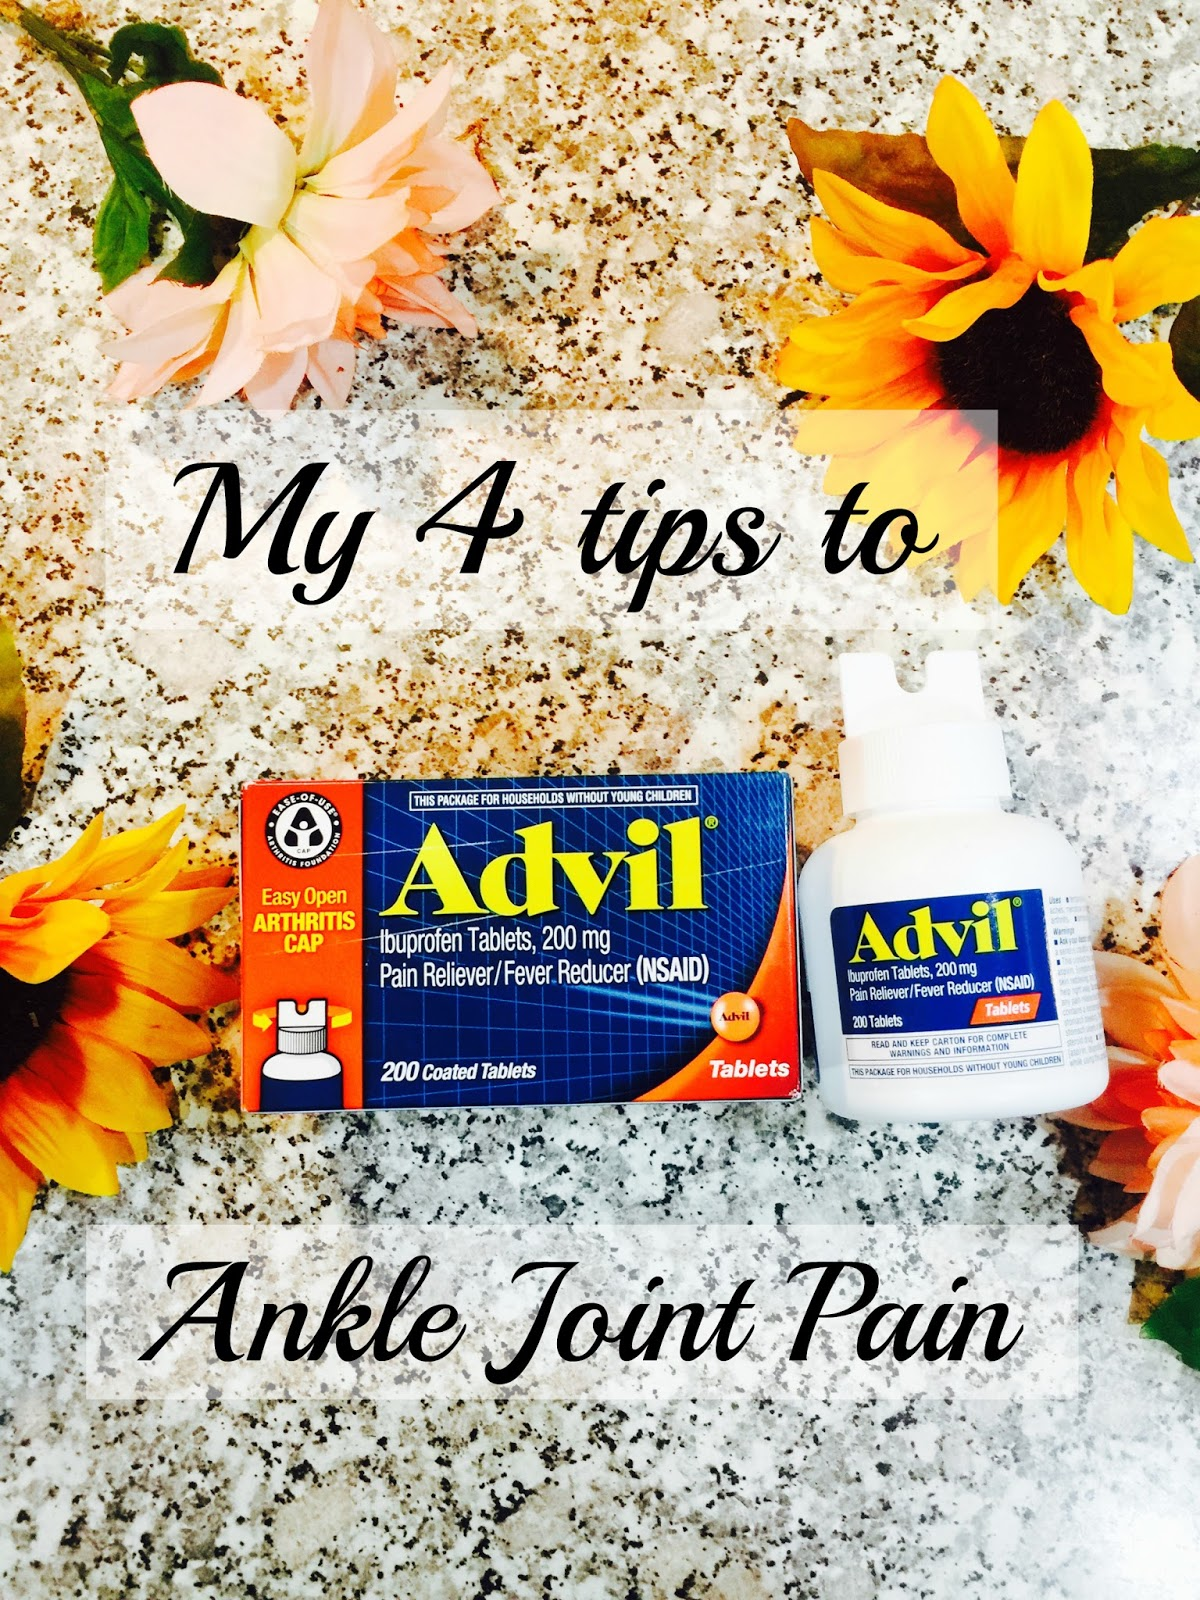 advil Arthritis, advil EZ caps, ankle joint pain, pain reliever, Advil,